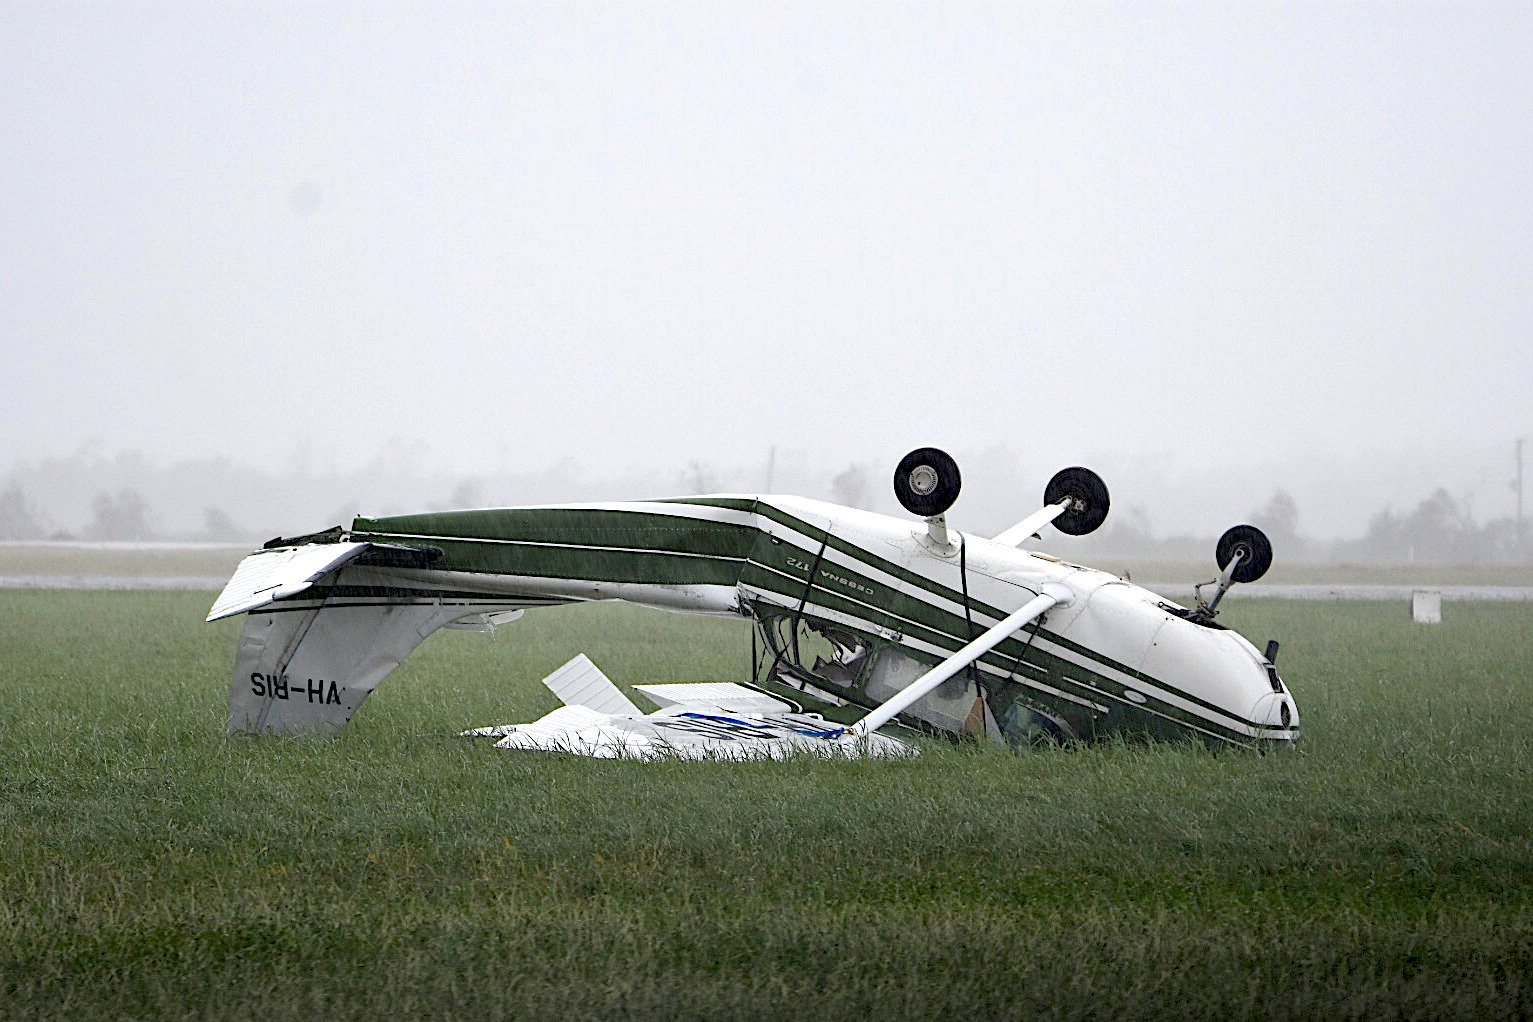 A plane that was flipped by strong winds from Cyclone Debbie is seen at the airport in the town of Bowen, located south of the northern Australian city of Townsville, March 29, 2017.    AAP/Sarah Motherwell/via REUTERS